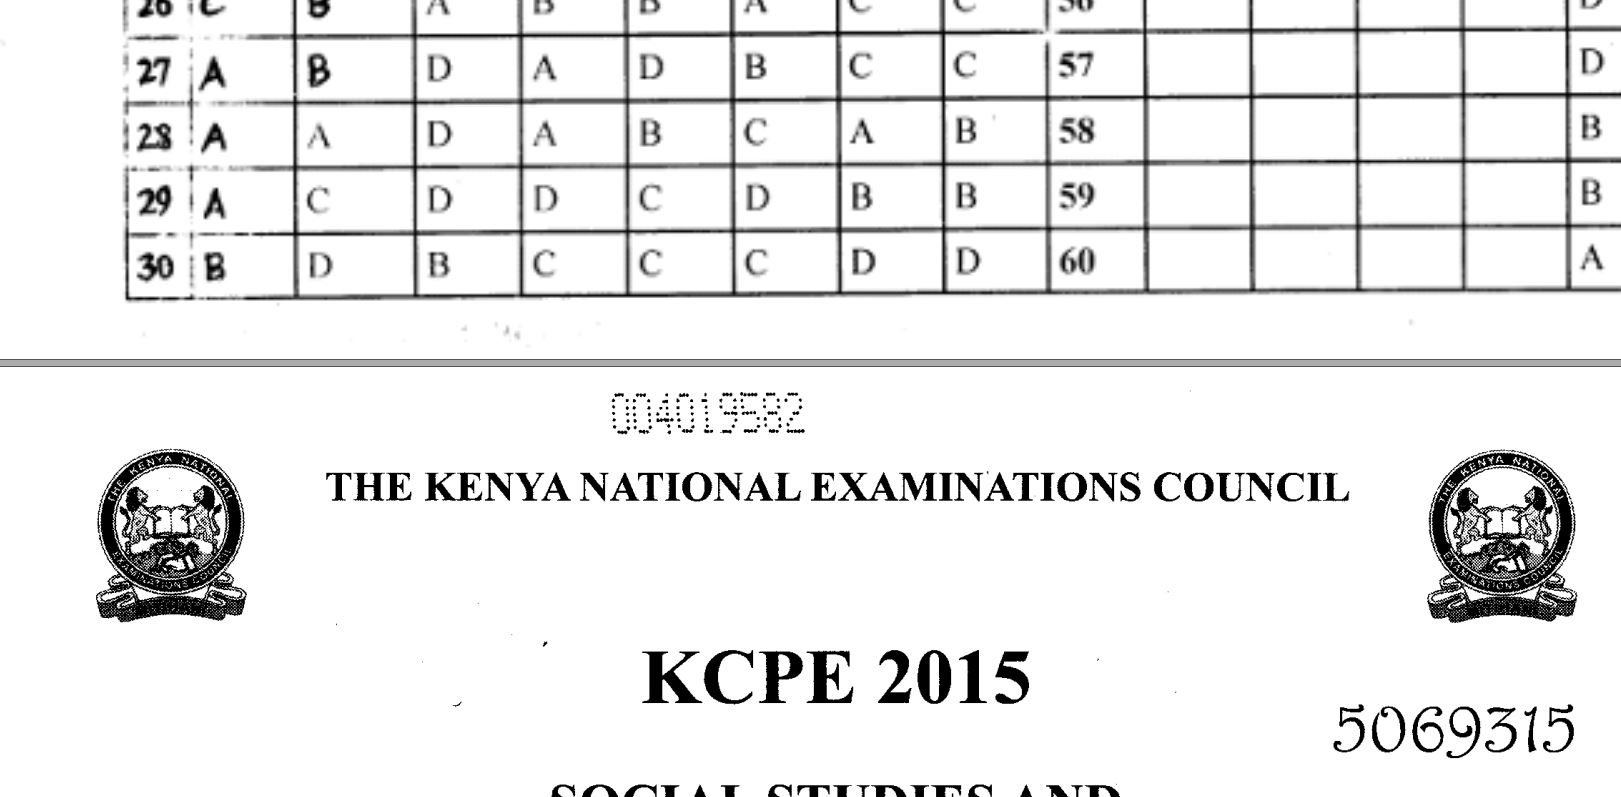 Kcpe / 2019 Kcpe Exams Here Are The Results In Numbers